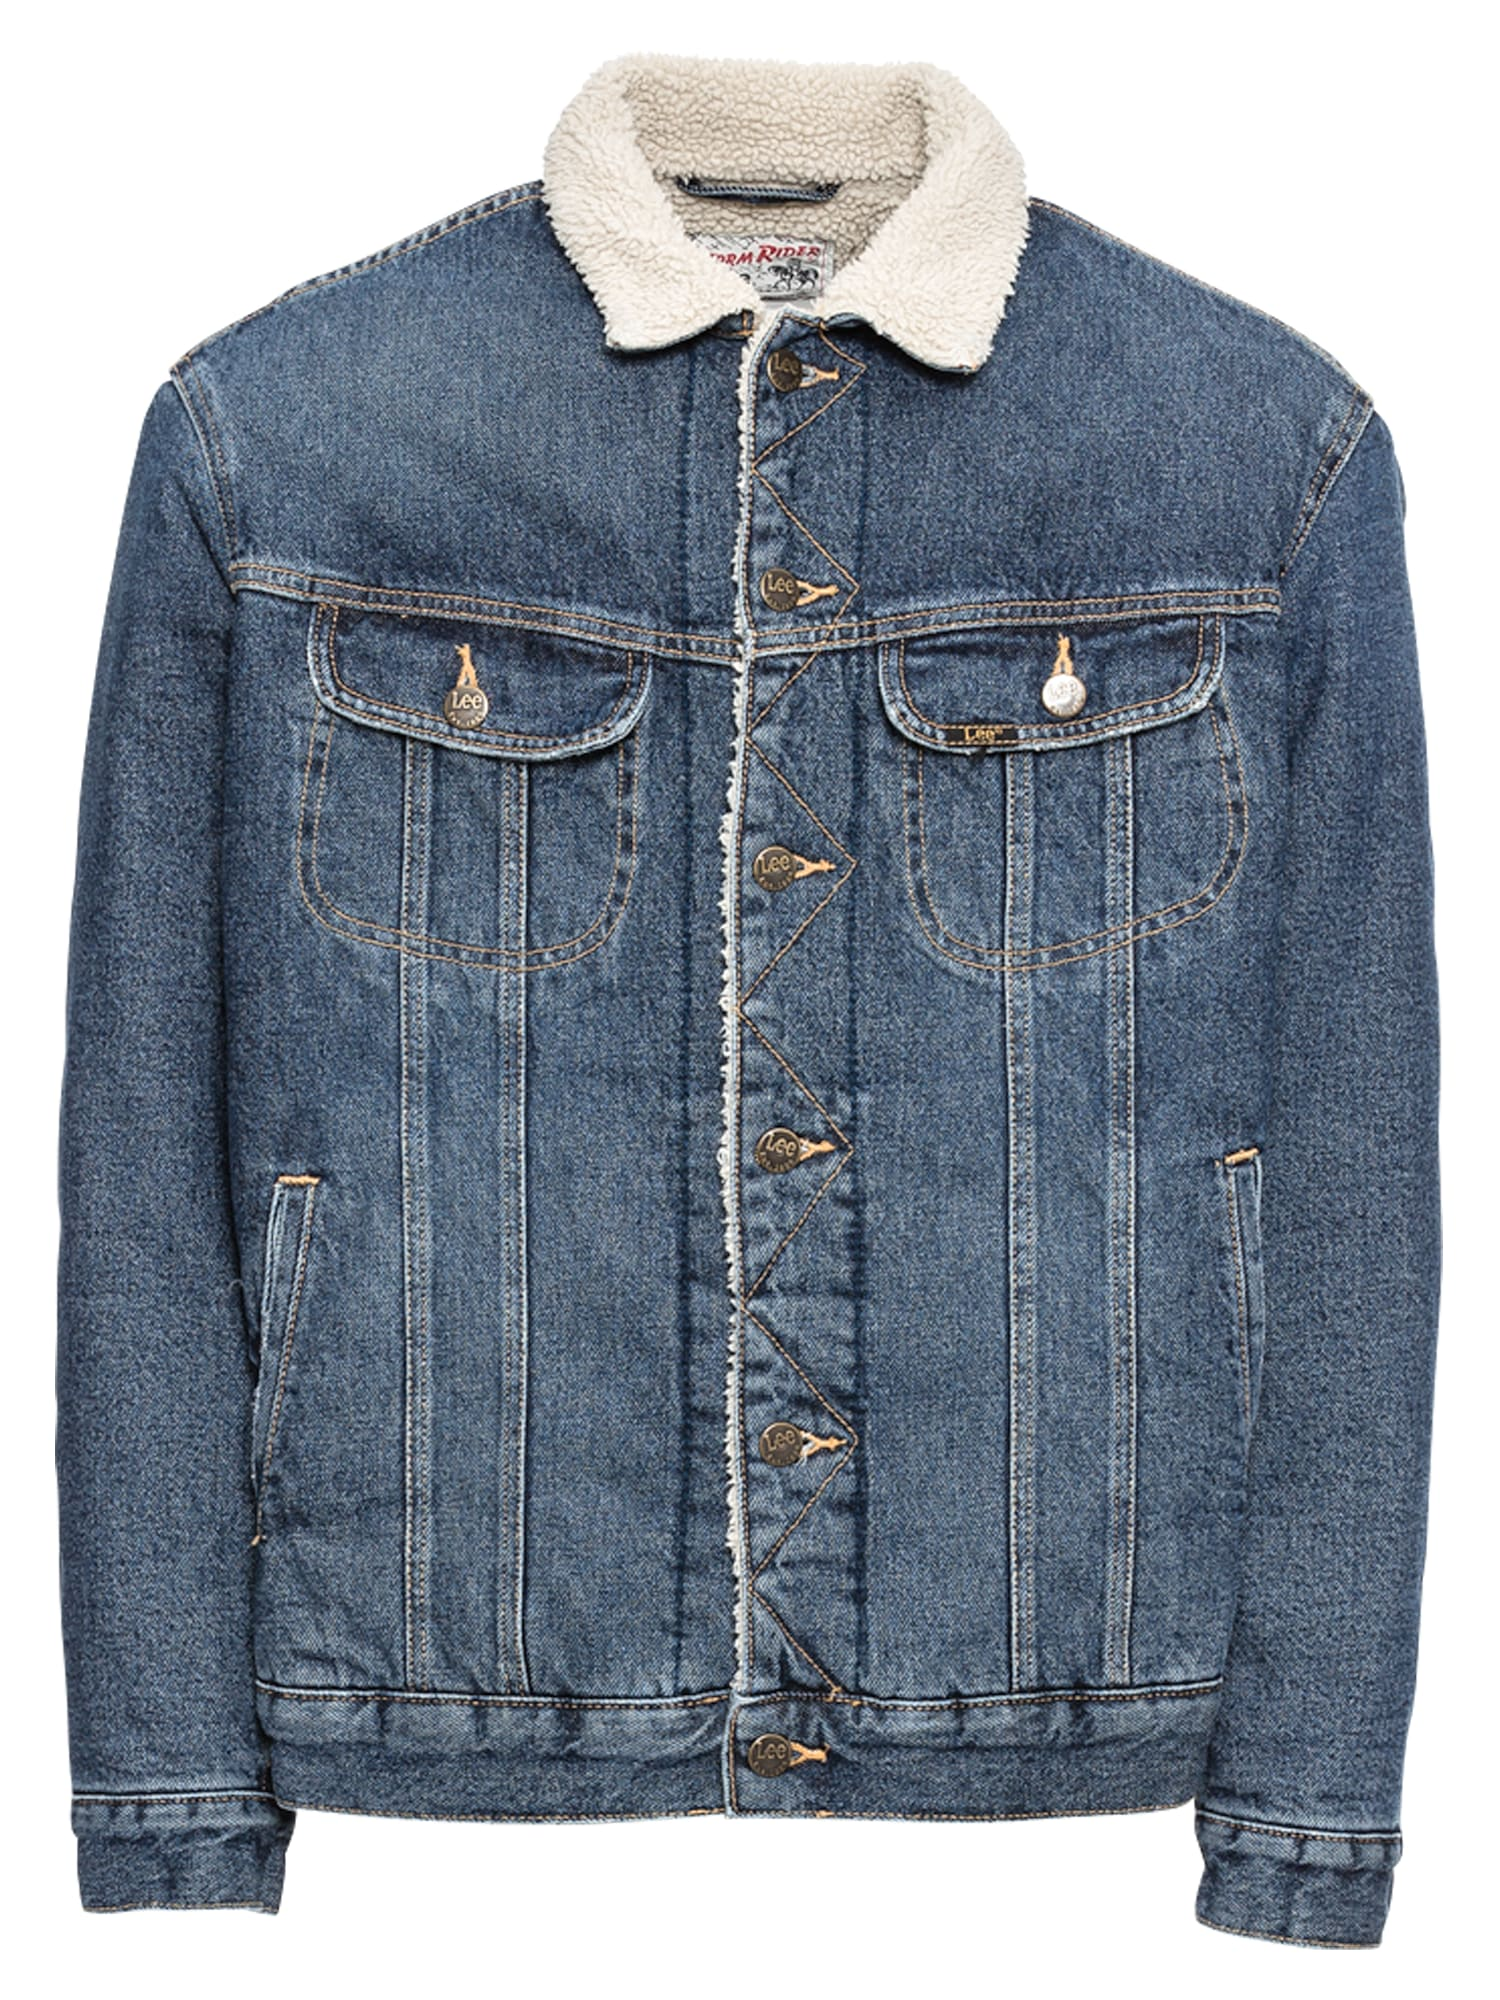 Lee, Heren Tussenjas 'SHERPA JACKET', blauw denim